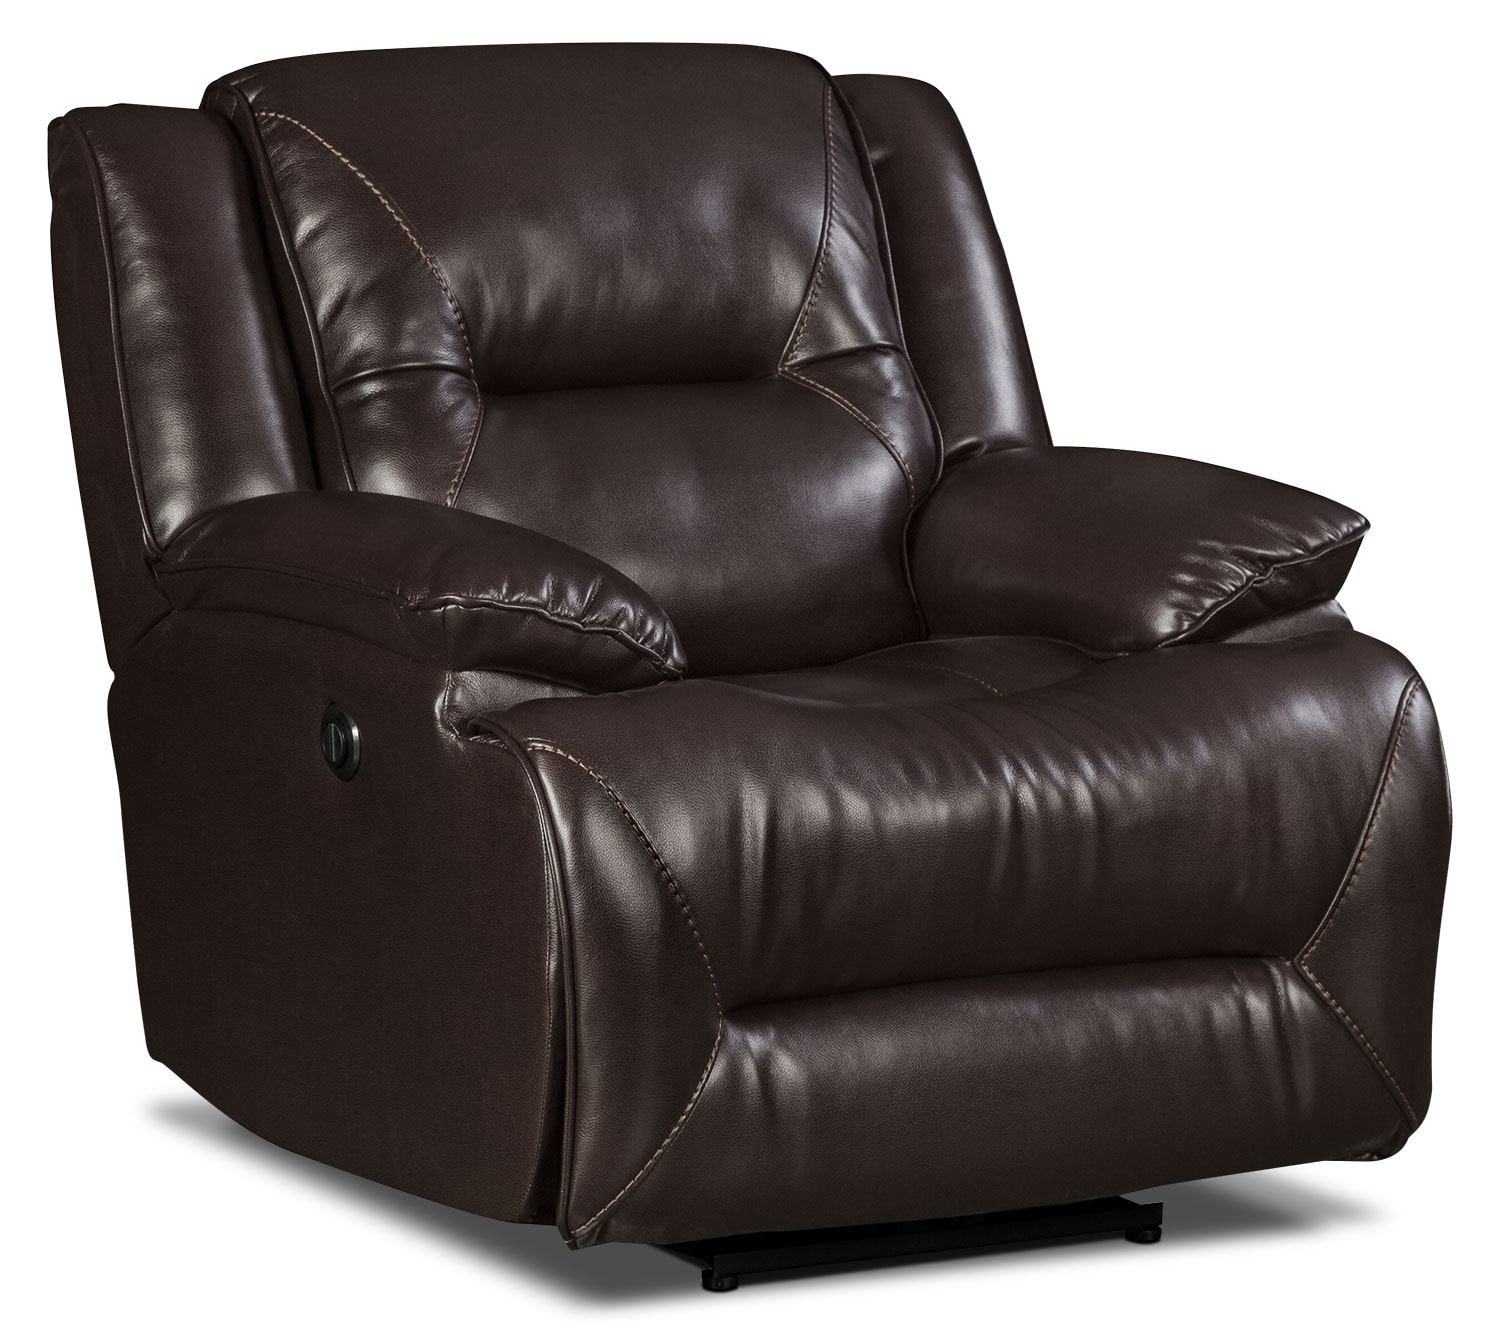 Living Room Furniture - Lancer Leather-Look Fabric Power Reclining Chair – Brown